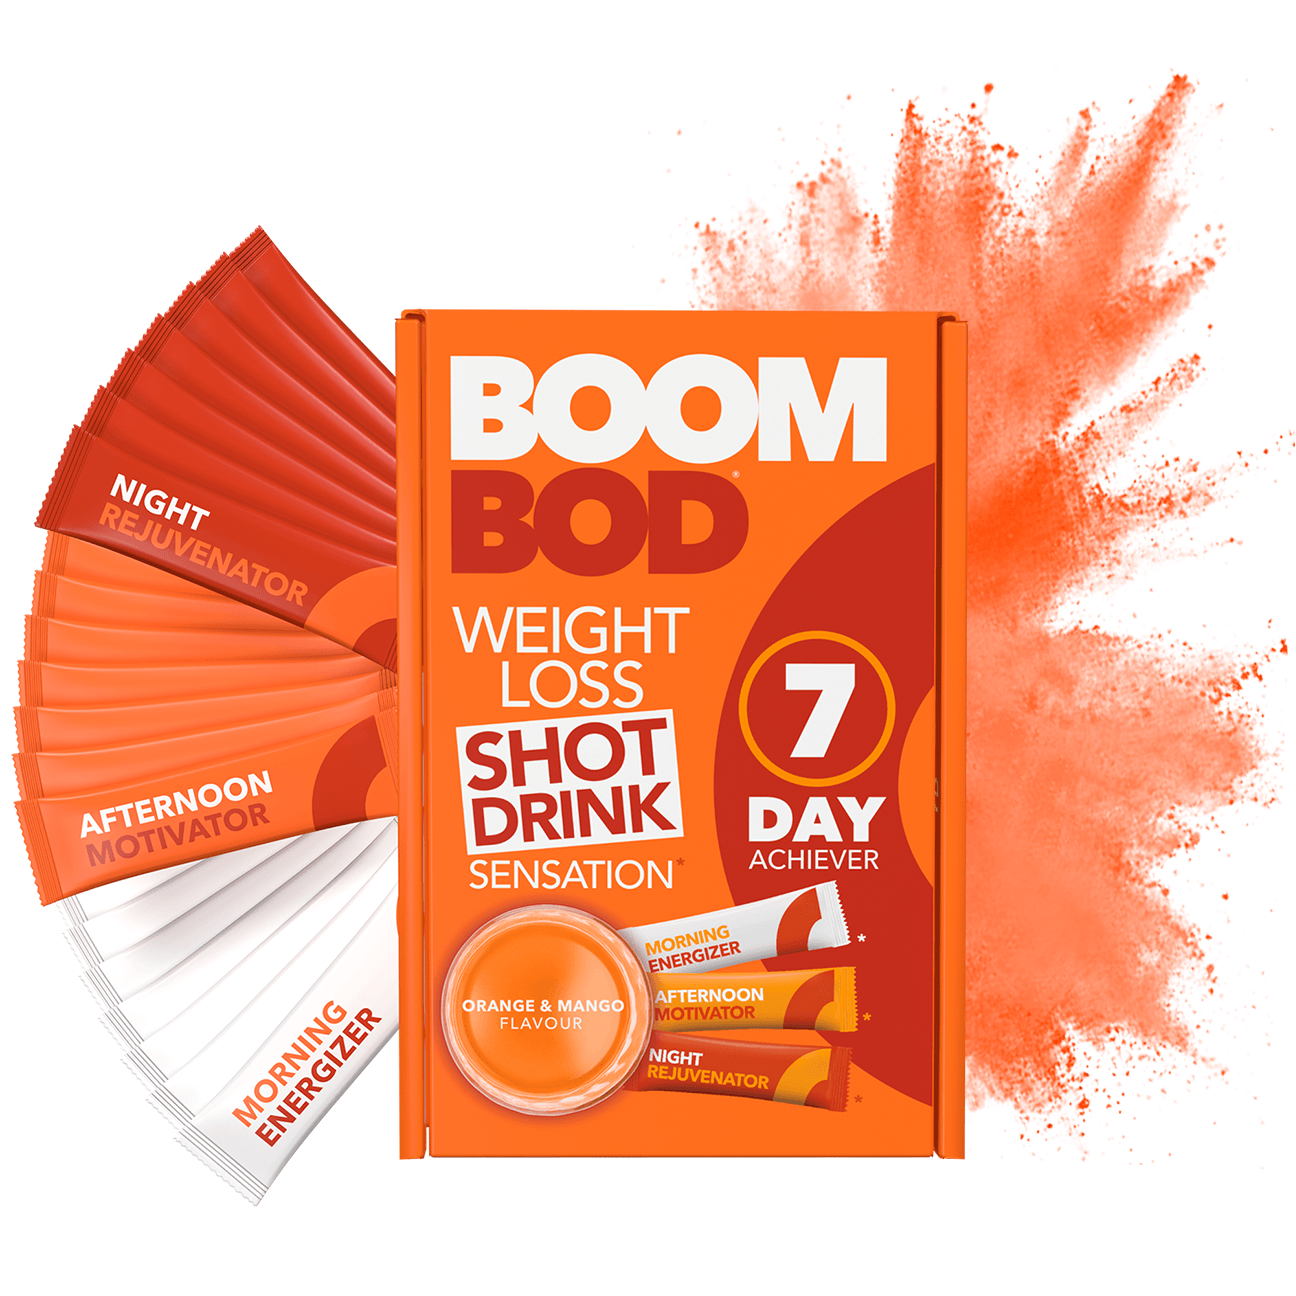 Boombod 7 Day Achiever | Orange Mango | Weight Loss Shot Drink